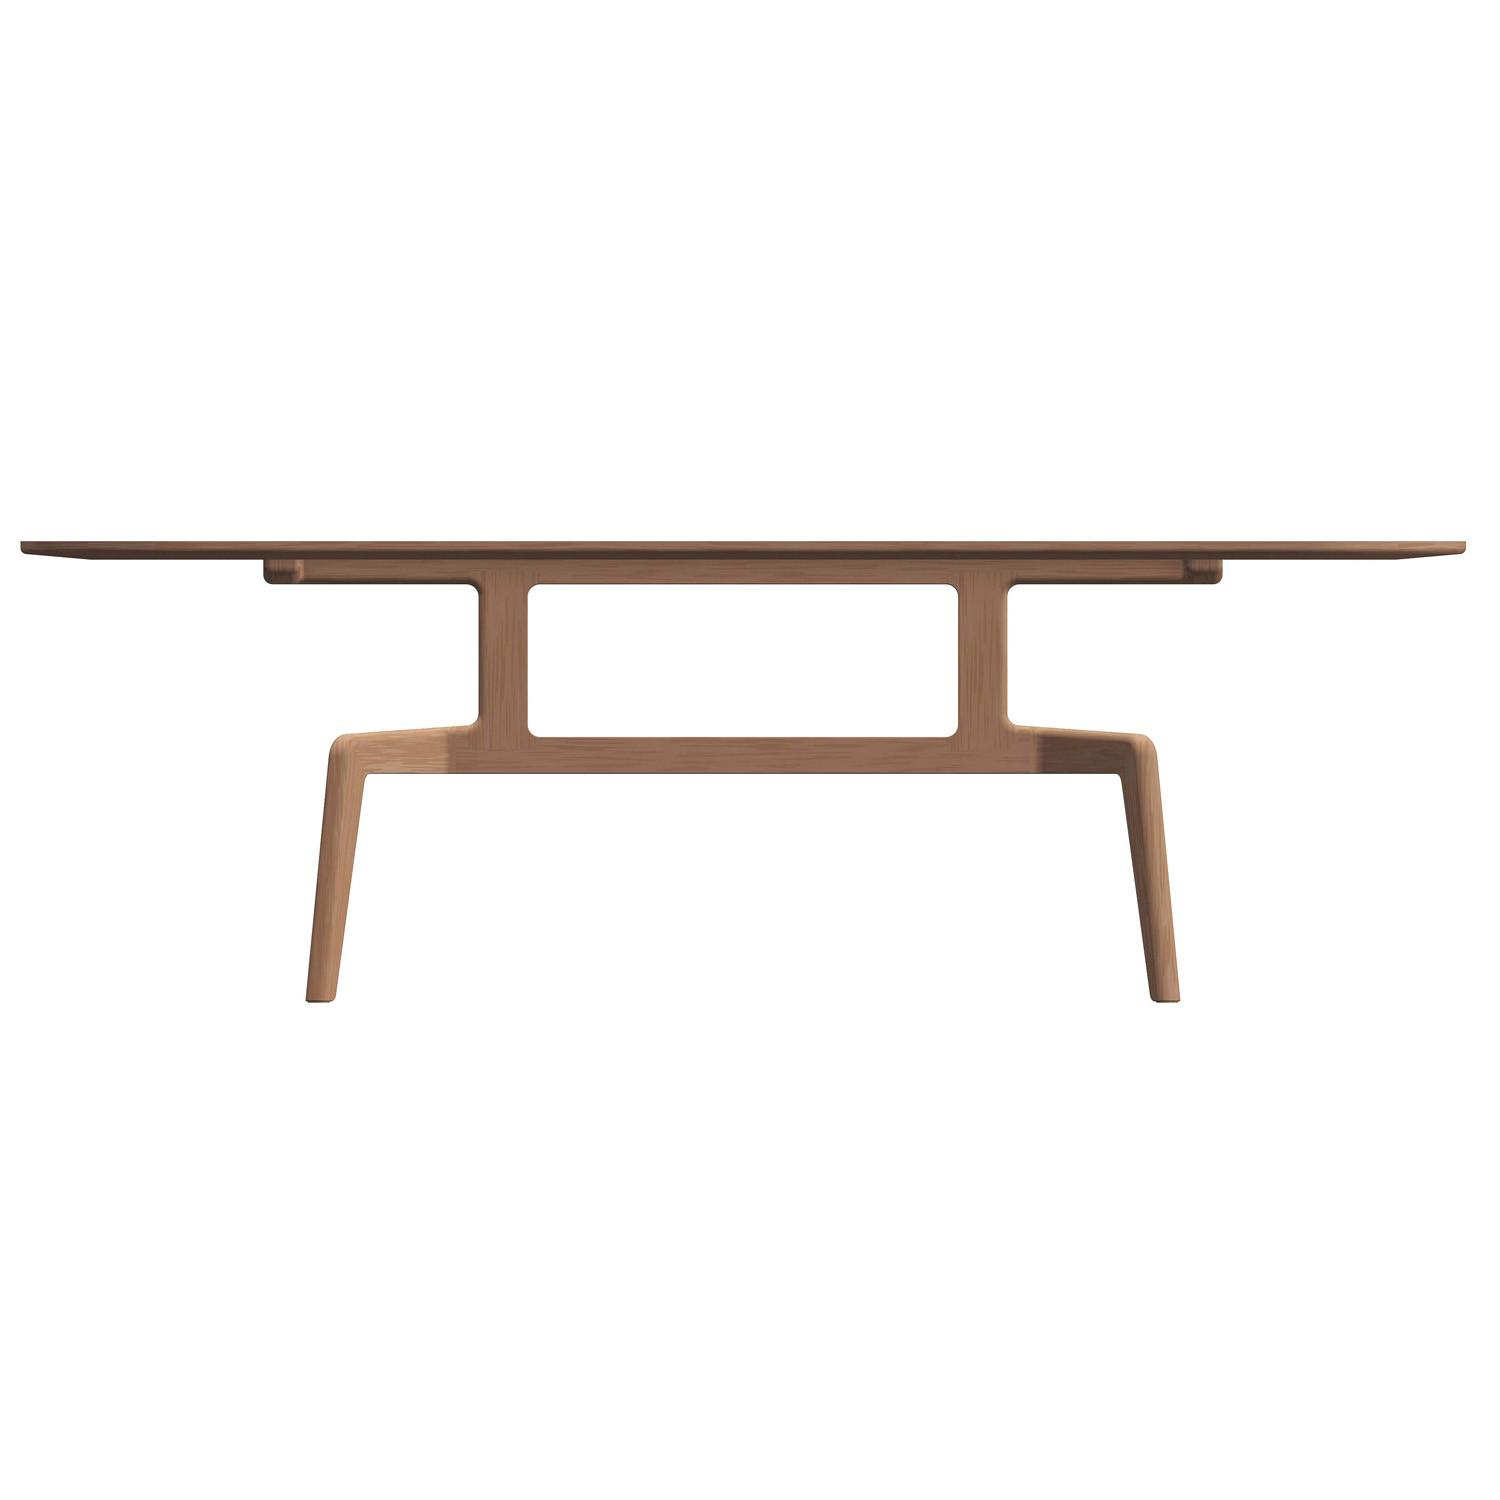 Stabiles Table has been designed by Alfredo Häberli